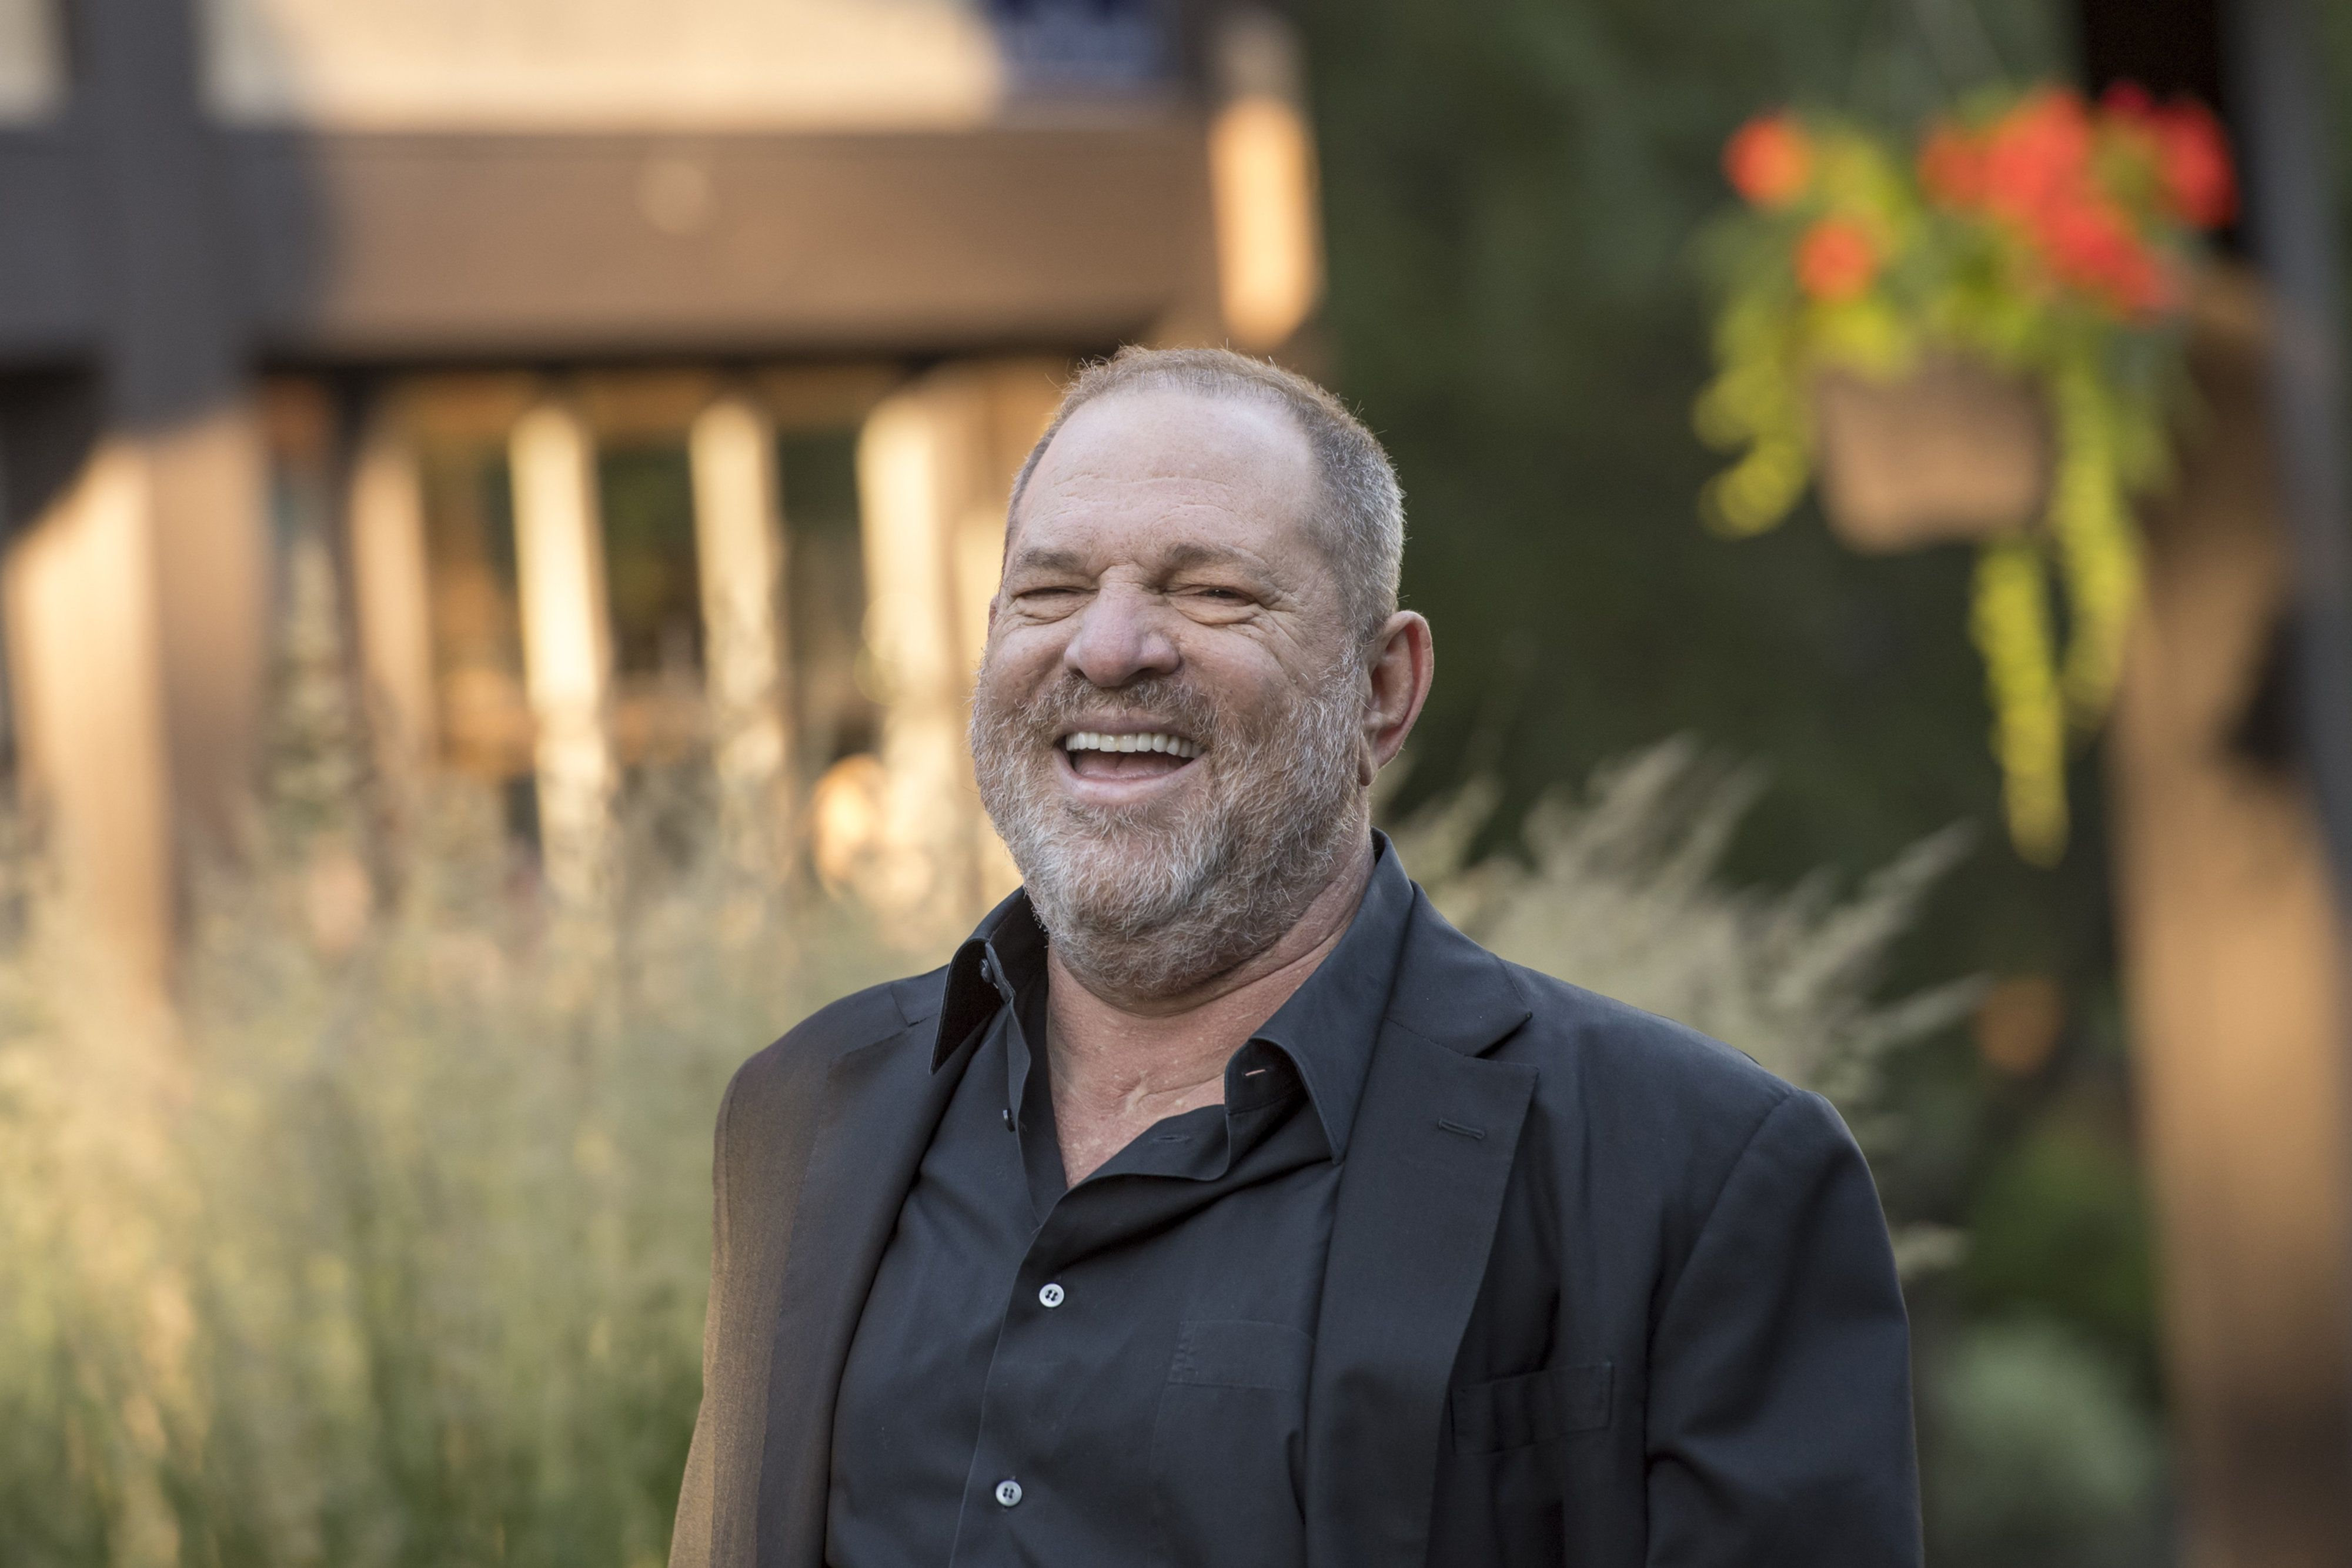 Harvey Weinstein, co-chairman and founder of Weinstein Co., arrives for a morning session during the Allen & Co. Media and Technology conference in Sun Valley, Idaho, U.S., on Wednesday, July 12, 2017. The 34th annual Allen & Co. conference gathers many of America's wealthiest and most powerful people in media, technology, and sports. Photographer: David Paul Morris/Bloomberg via Getty Images